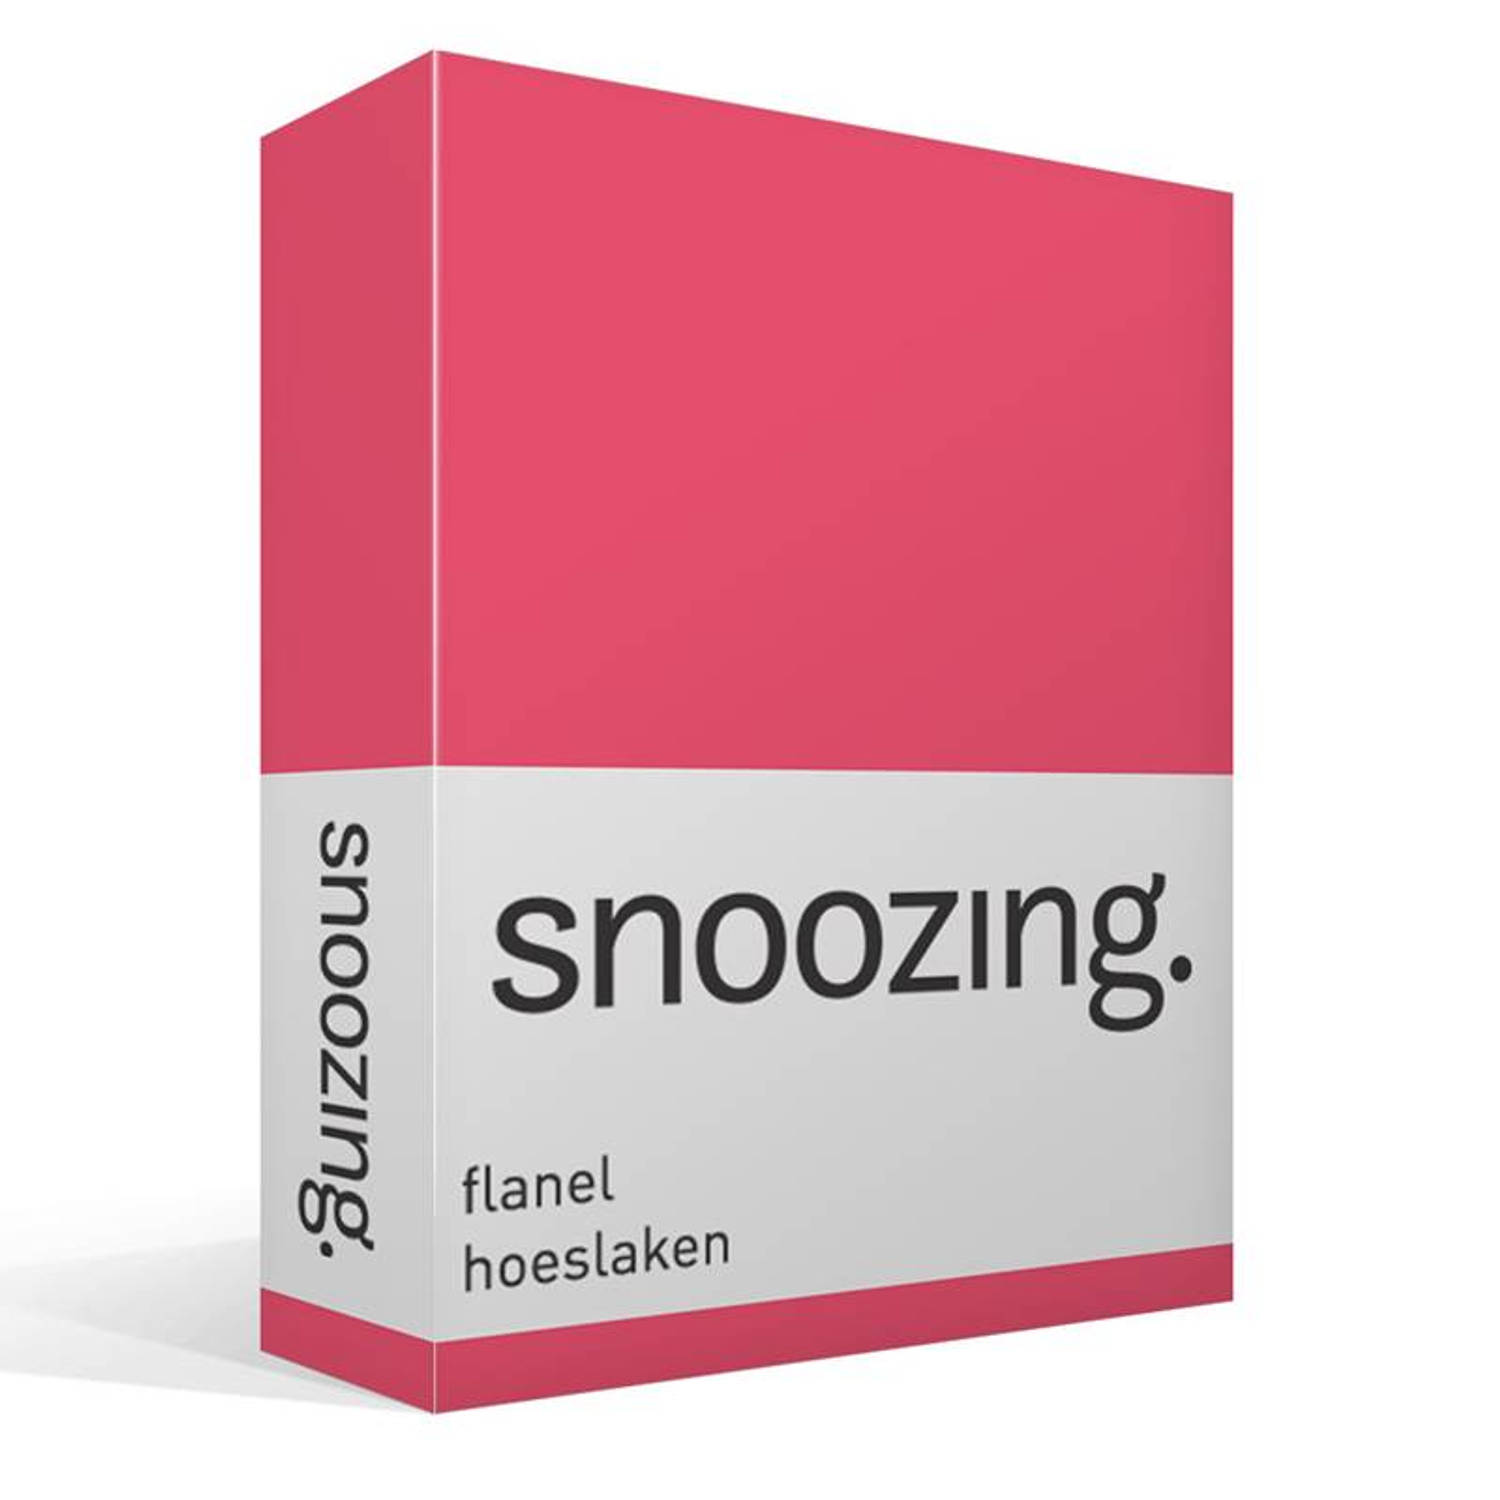 Snoozing flanel hoeslaken - 1-persoons (80/90x200 cm)